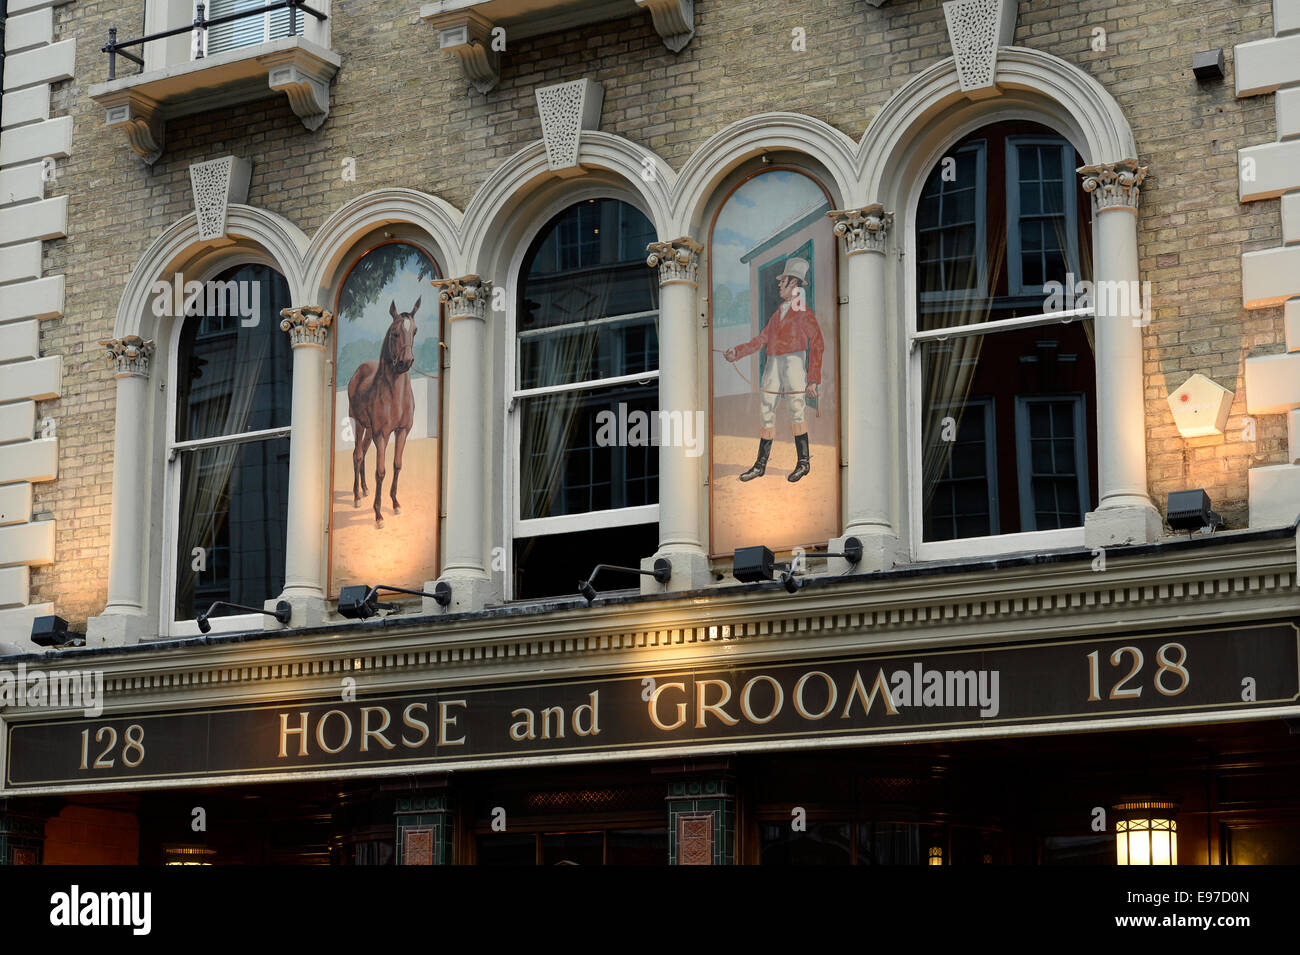 Horse and Groom Public House, 128 Great Portland Street, London, England, UK. - Stock Image